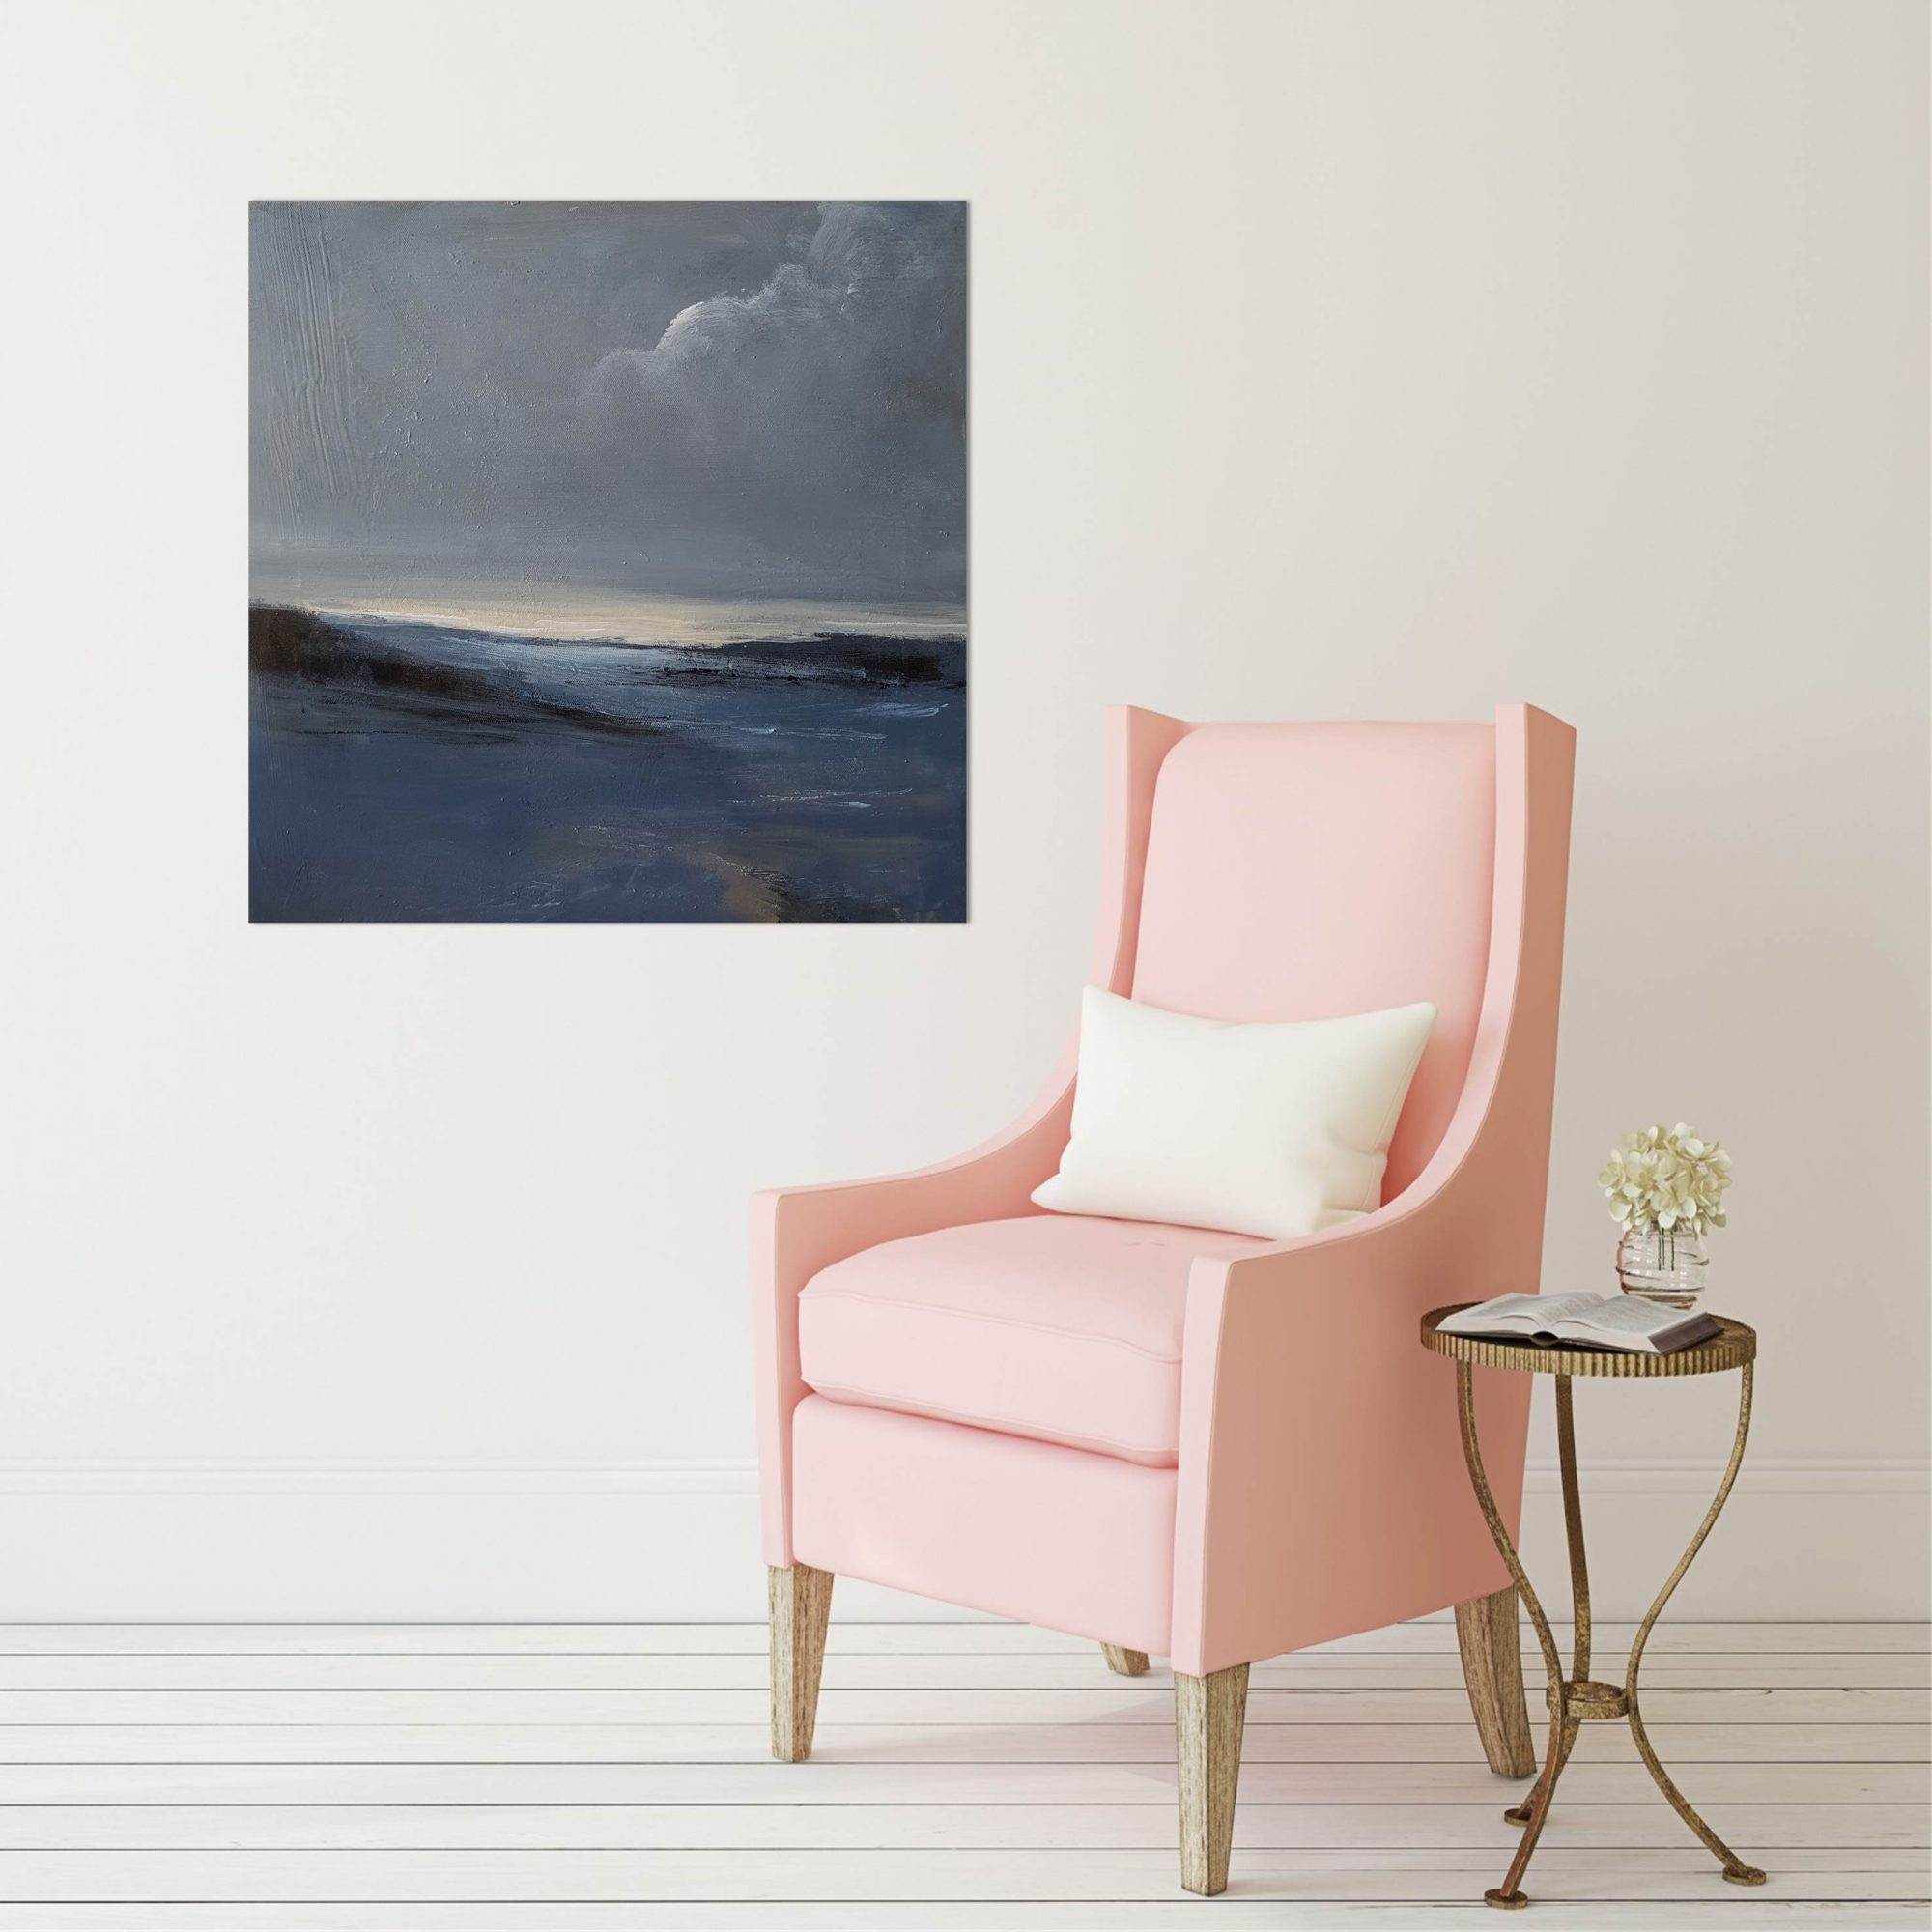 Inlet with pink chair